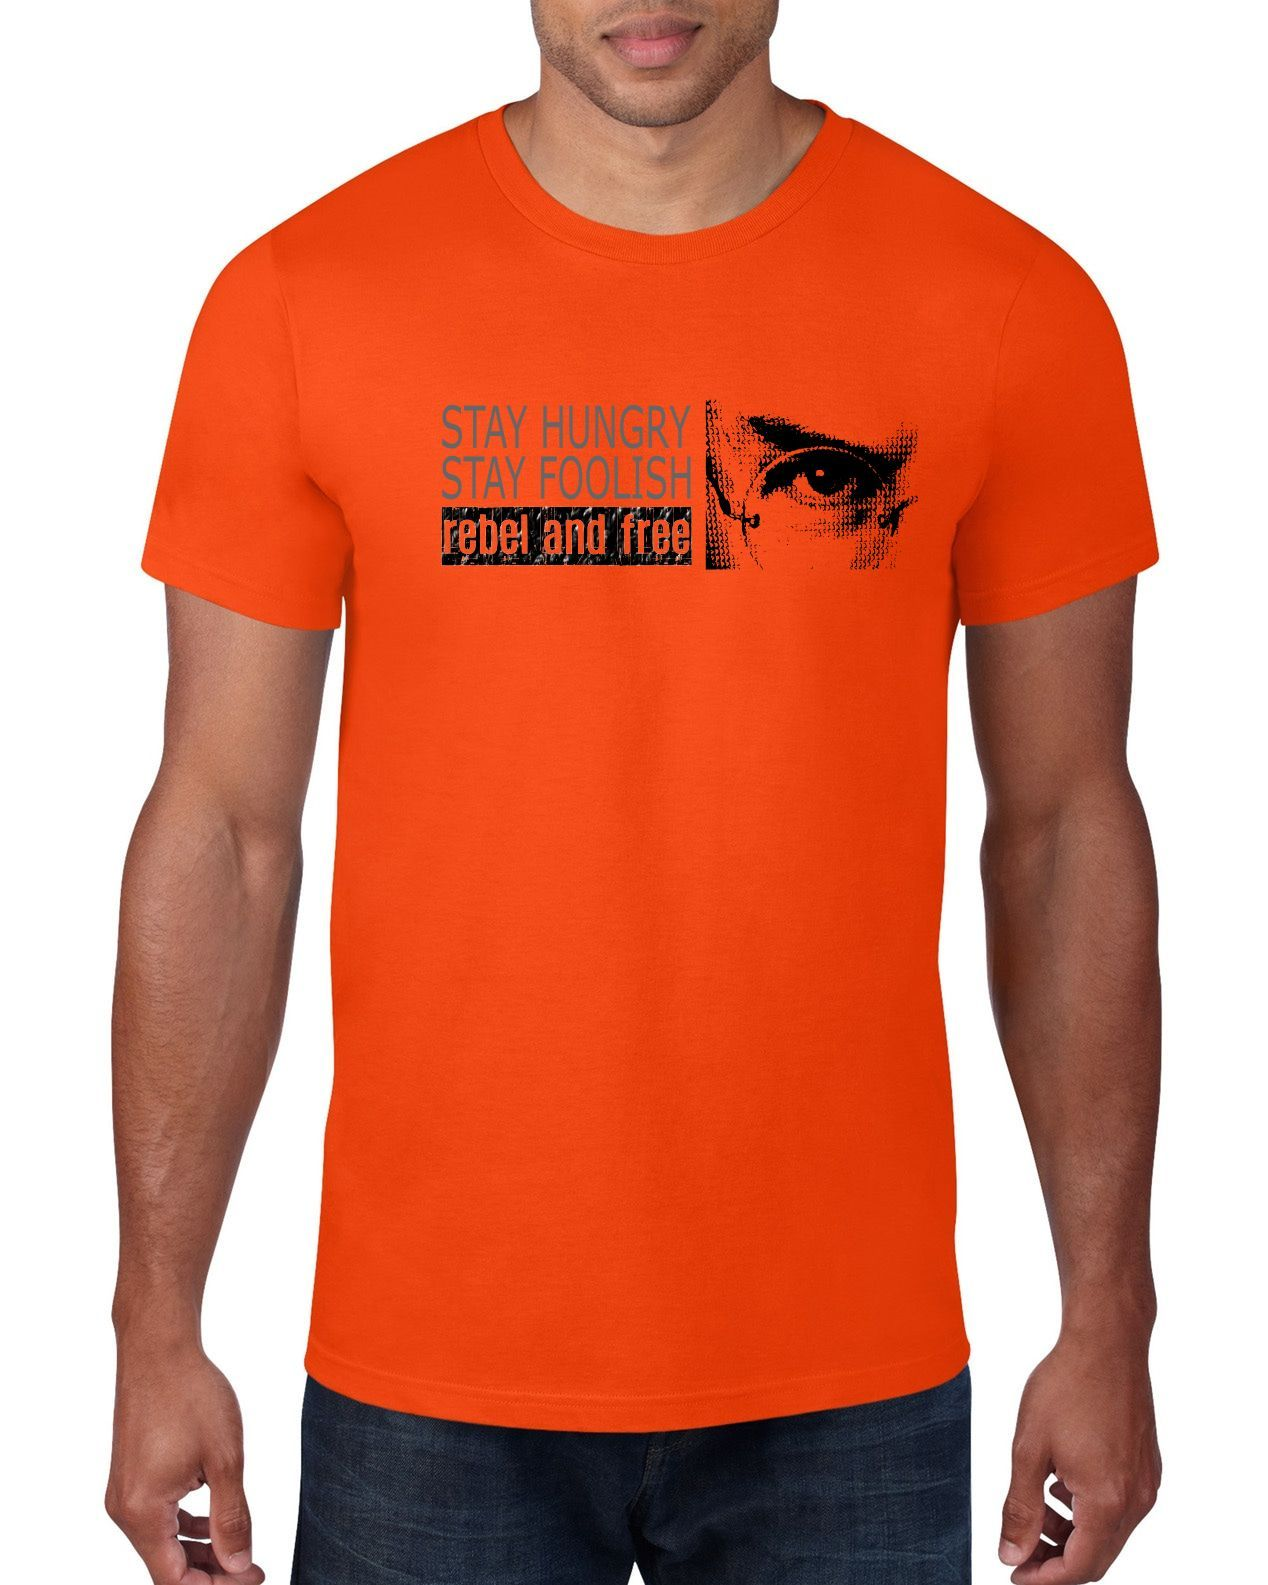 Stay Hungry Stay Foolish - Short sleeve t-shirt